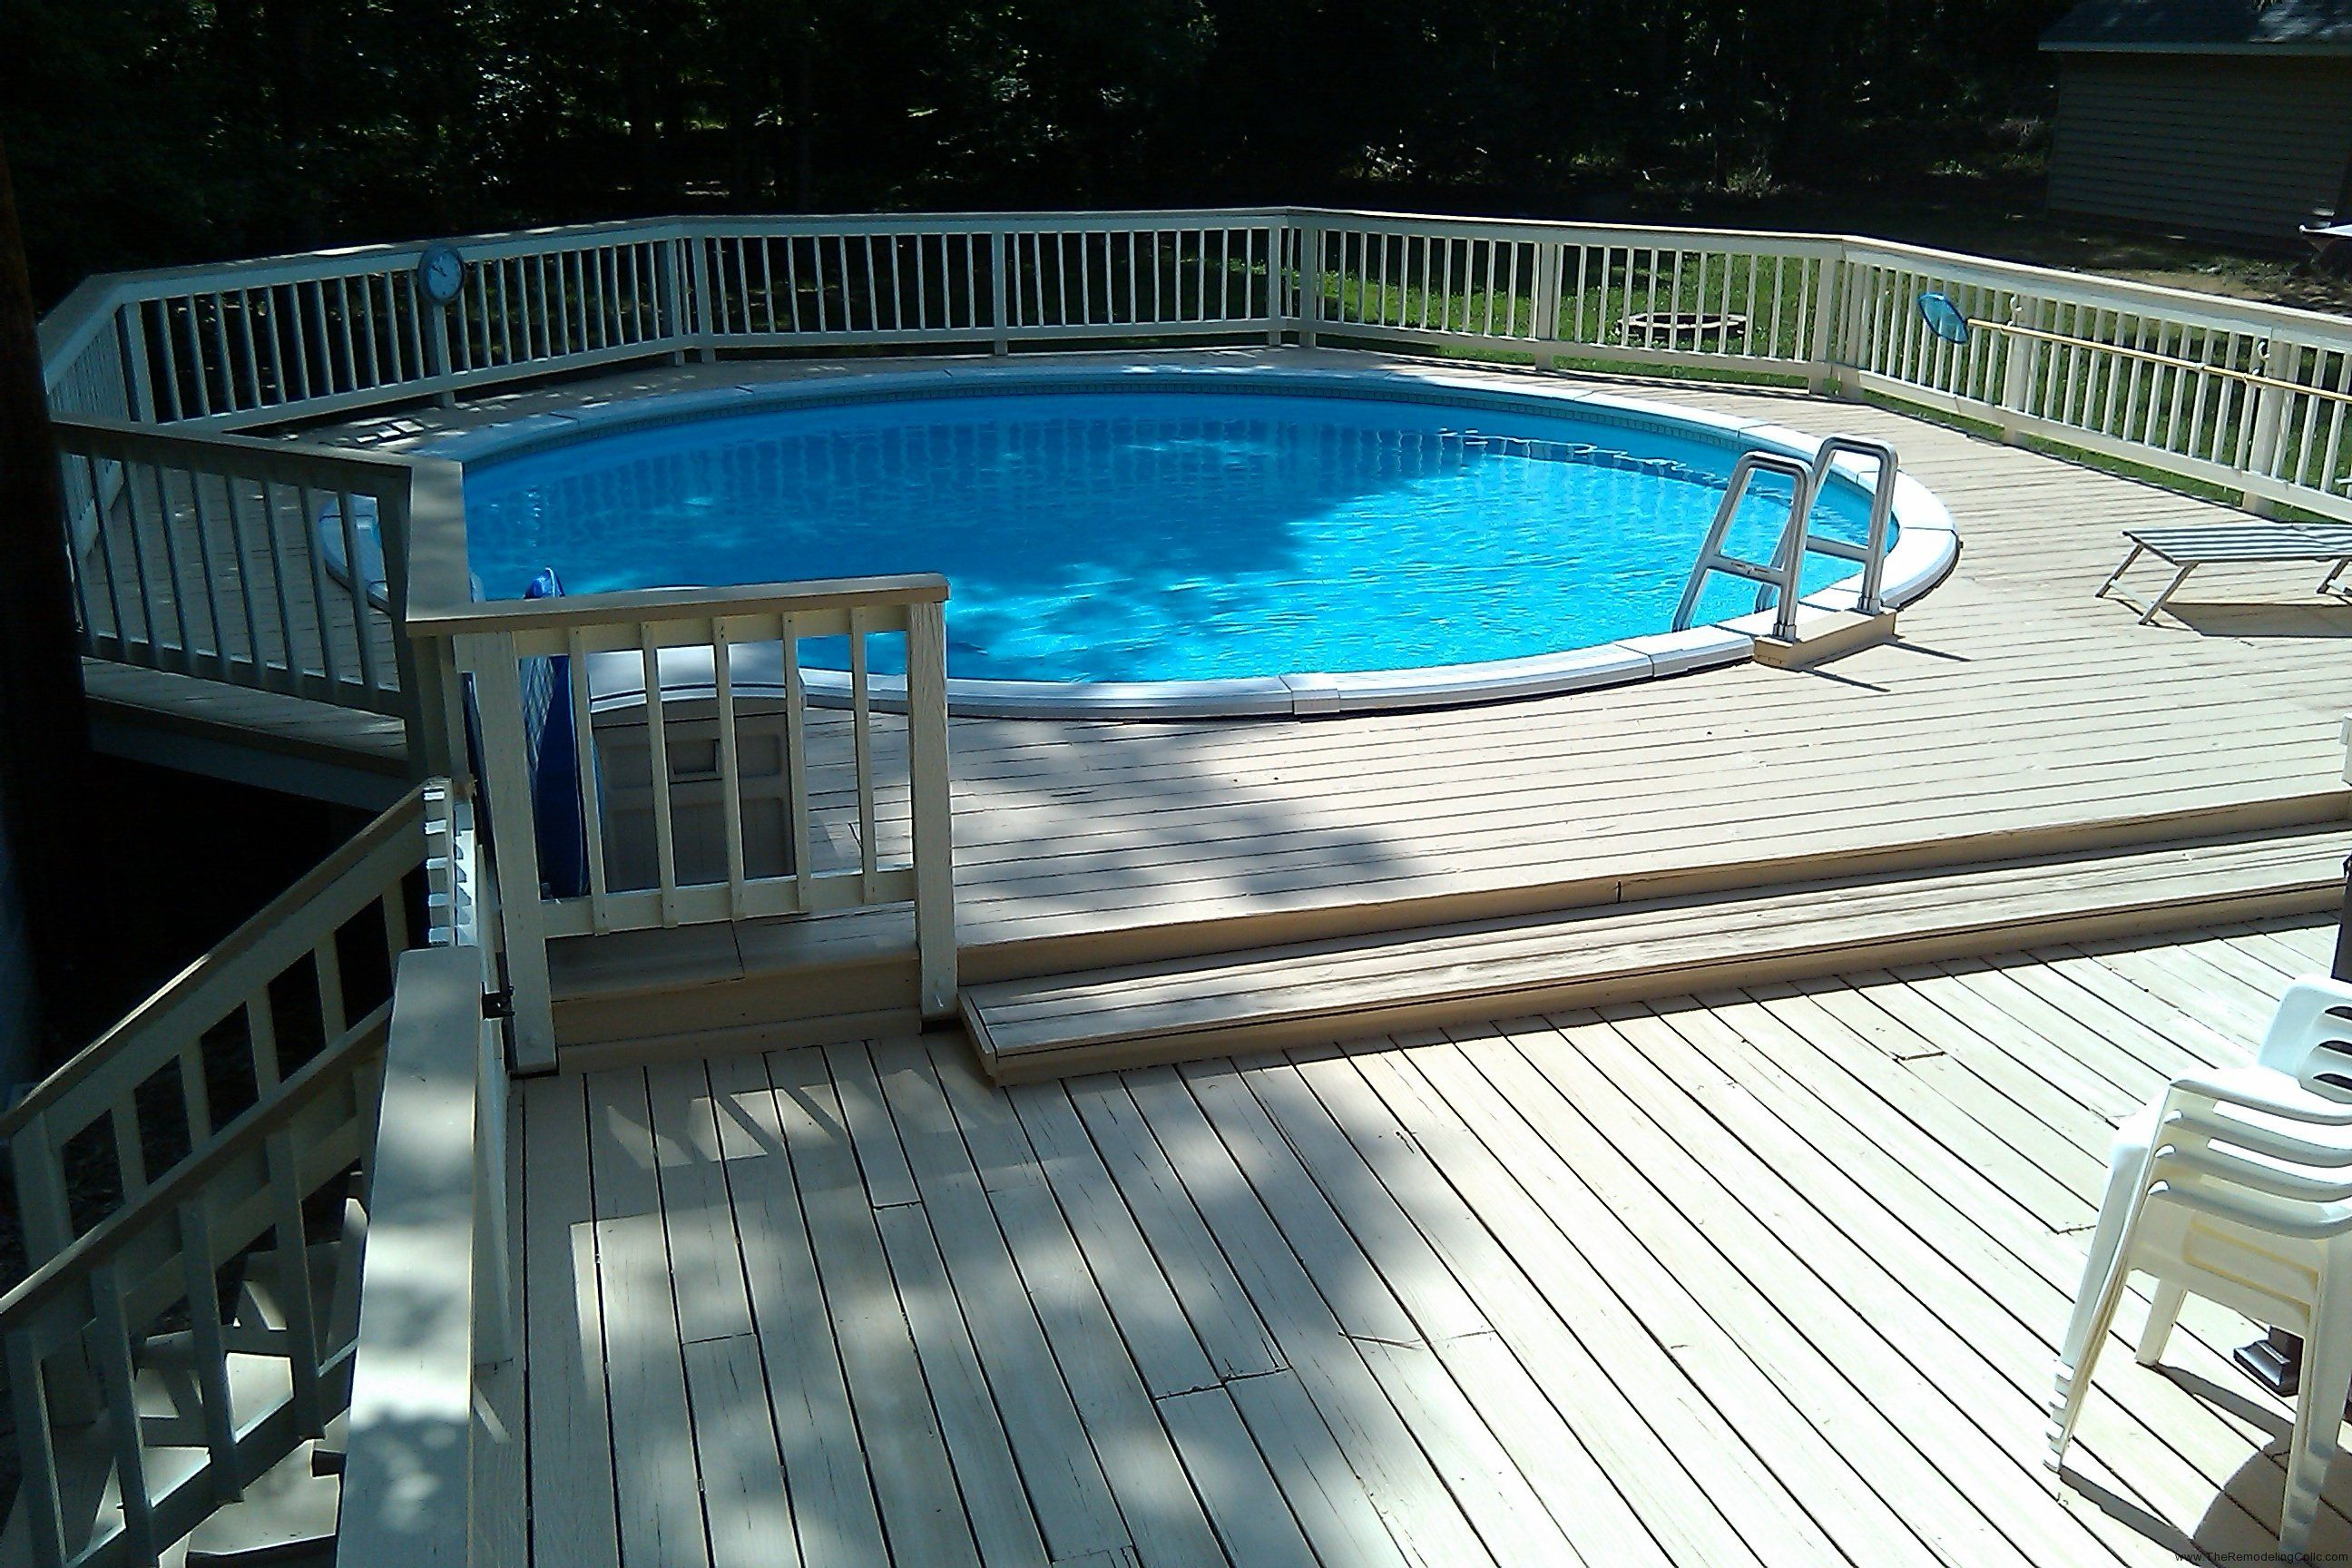 Deck Design Ideas For Above Ground Pools 25 best ideas about above ground pool decks on pinterest swimming pool decks pool decks and ground pools Unique Wooden Deck Above Ground Small Backyard Pools Ideas With Round Shape Design